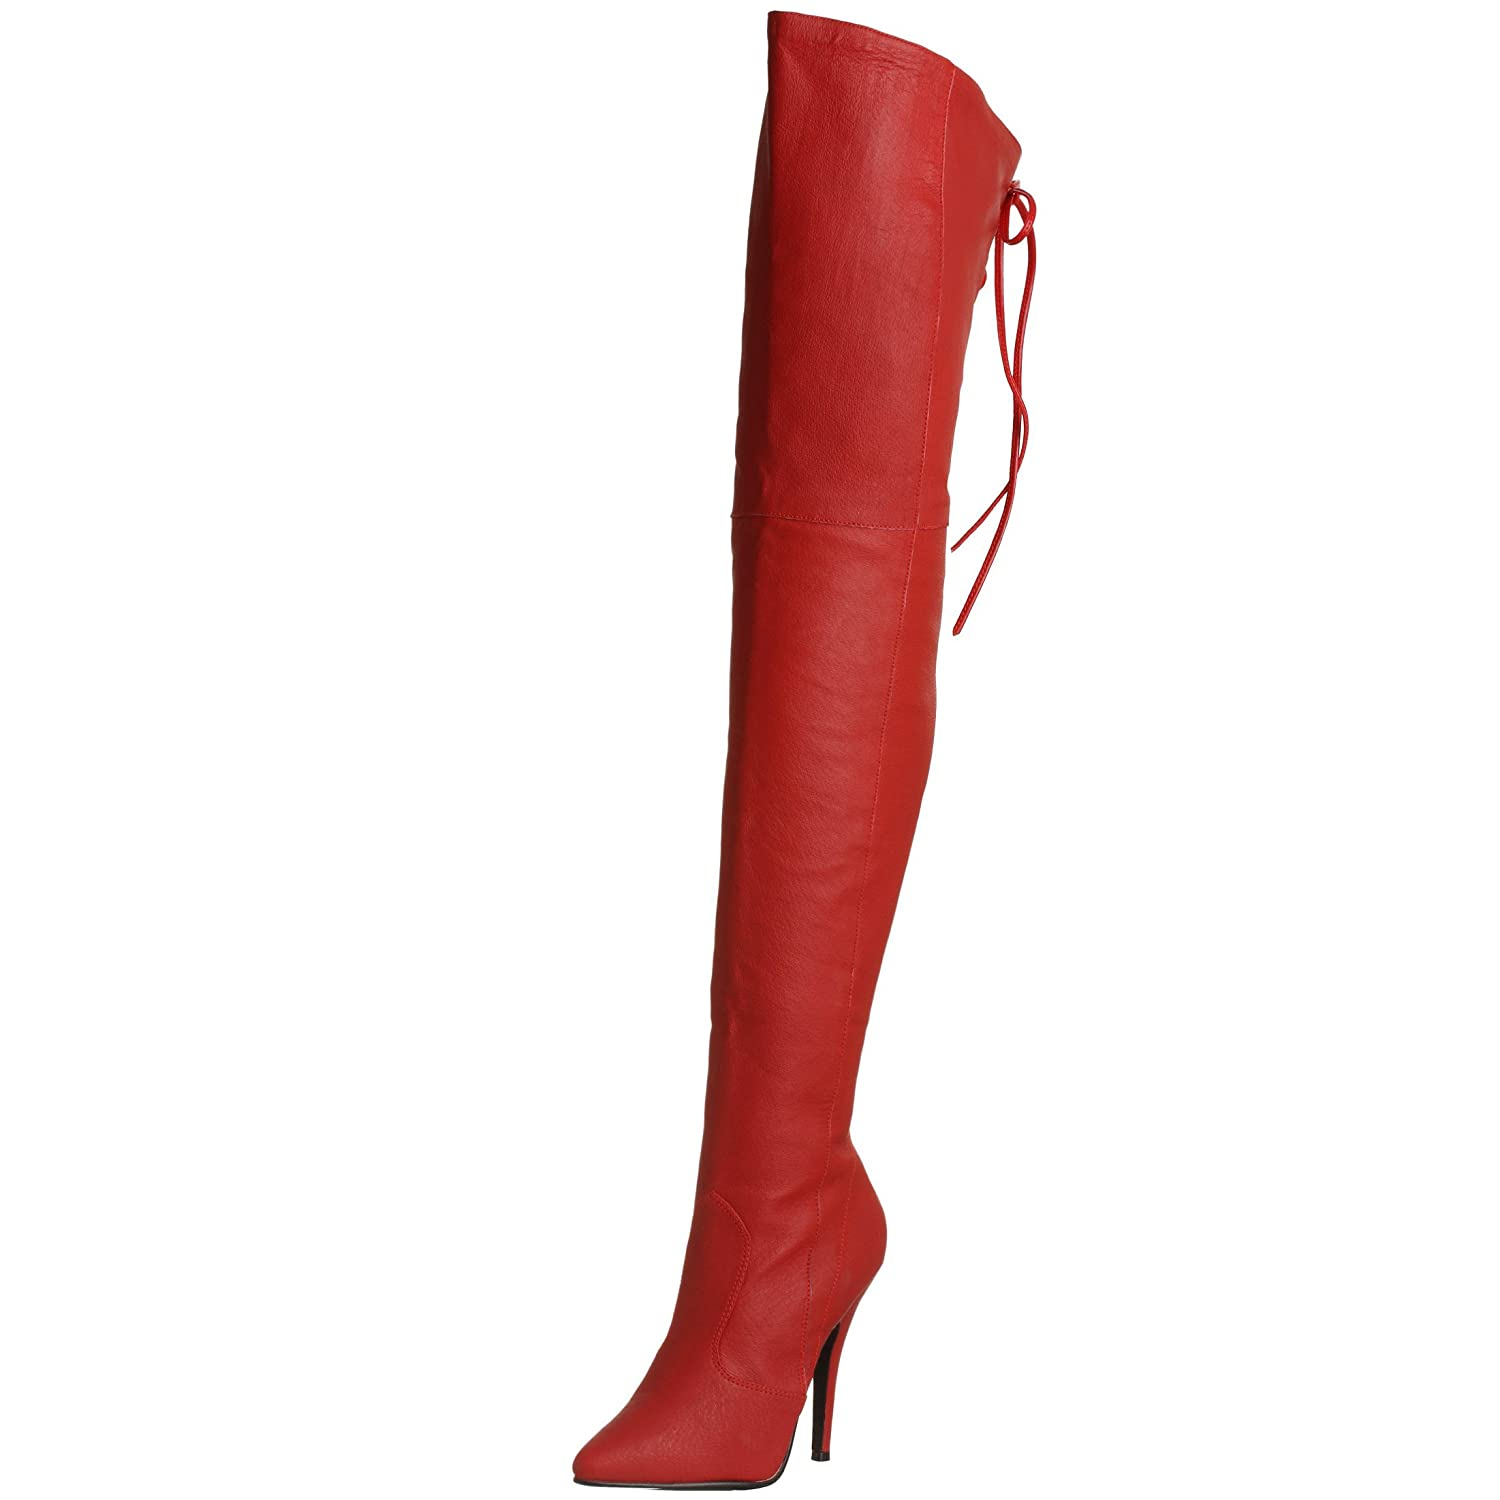 53ab0e2c36bbc Amazon.com | 5 Inch Sexy Thigh Boot with Lace at The Rear Red Leather High  Heel Boot | Boots